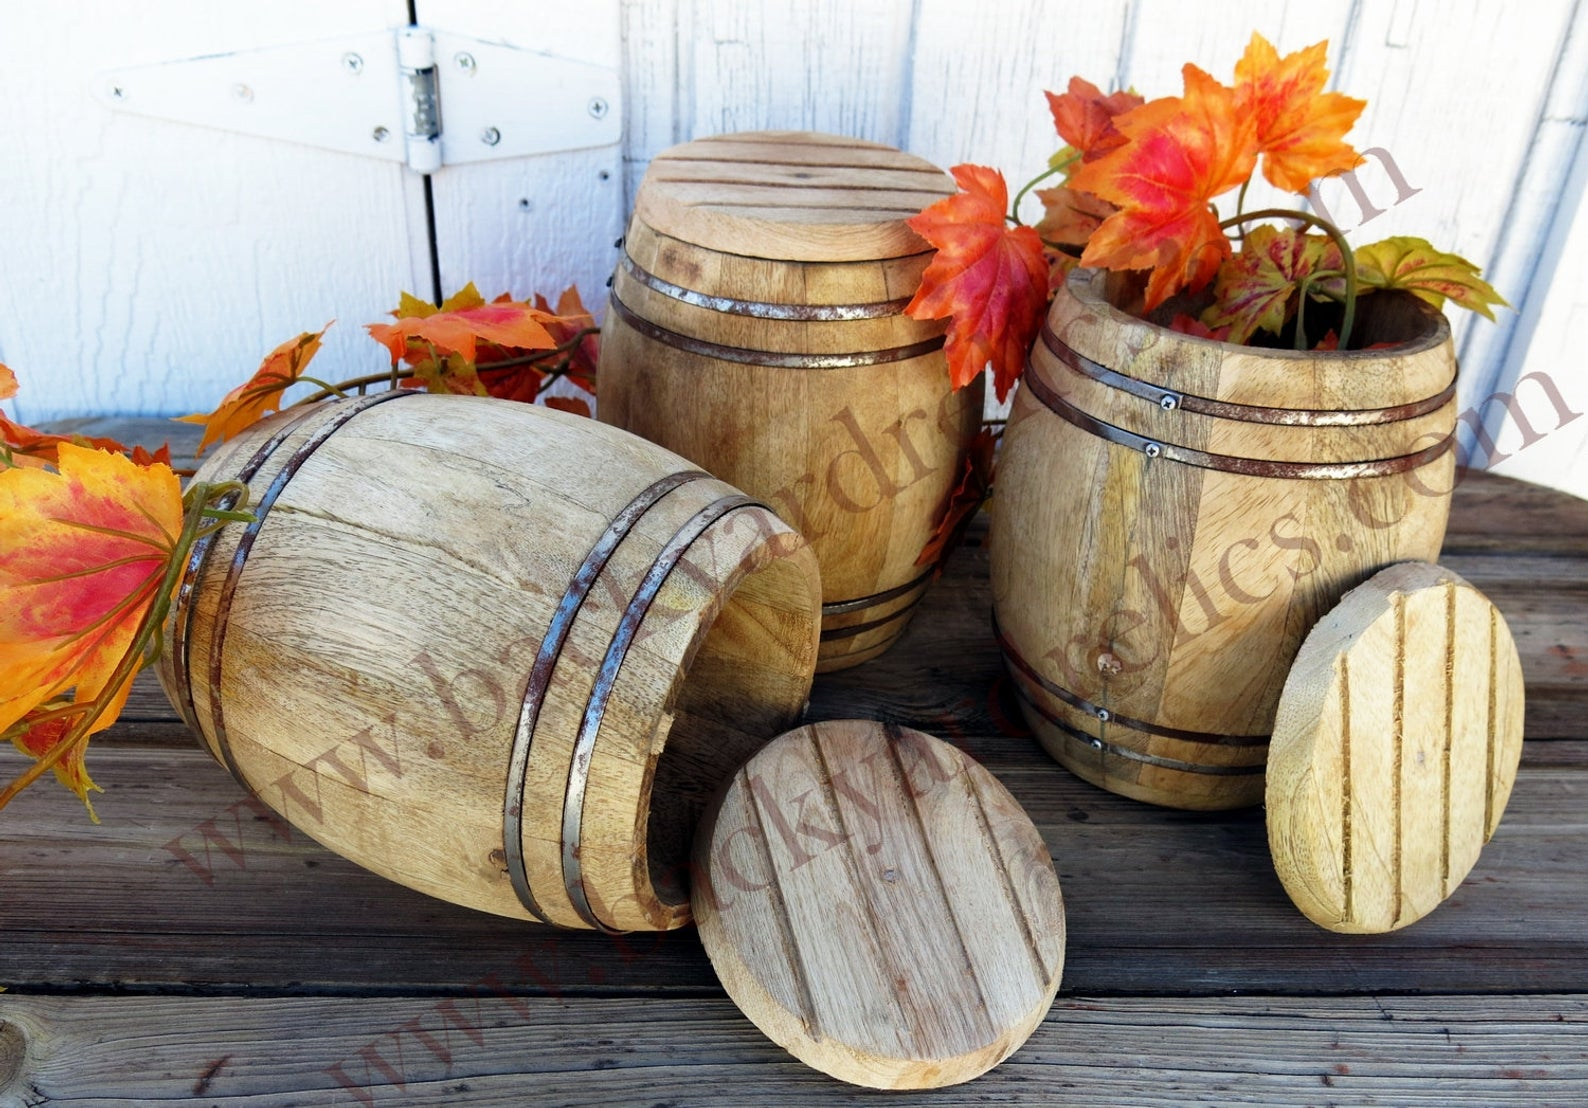 1 Small Wooden Barrel With One End Open 7 Tall Inset Steel Bands Country Christmas Centerpiece Usa Wooden Barrel Small Wooden Barrels Barrel Wedding Decor